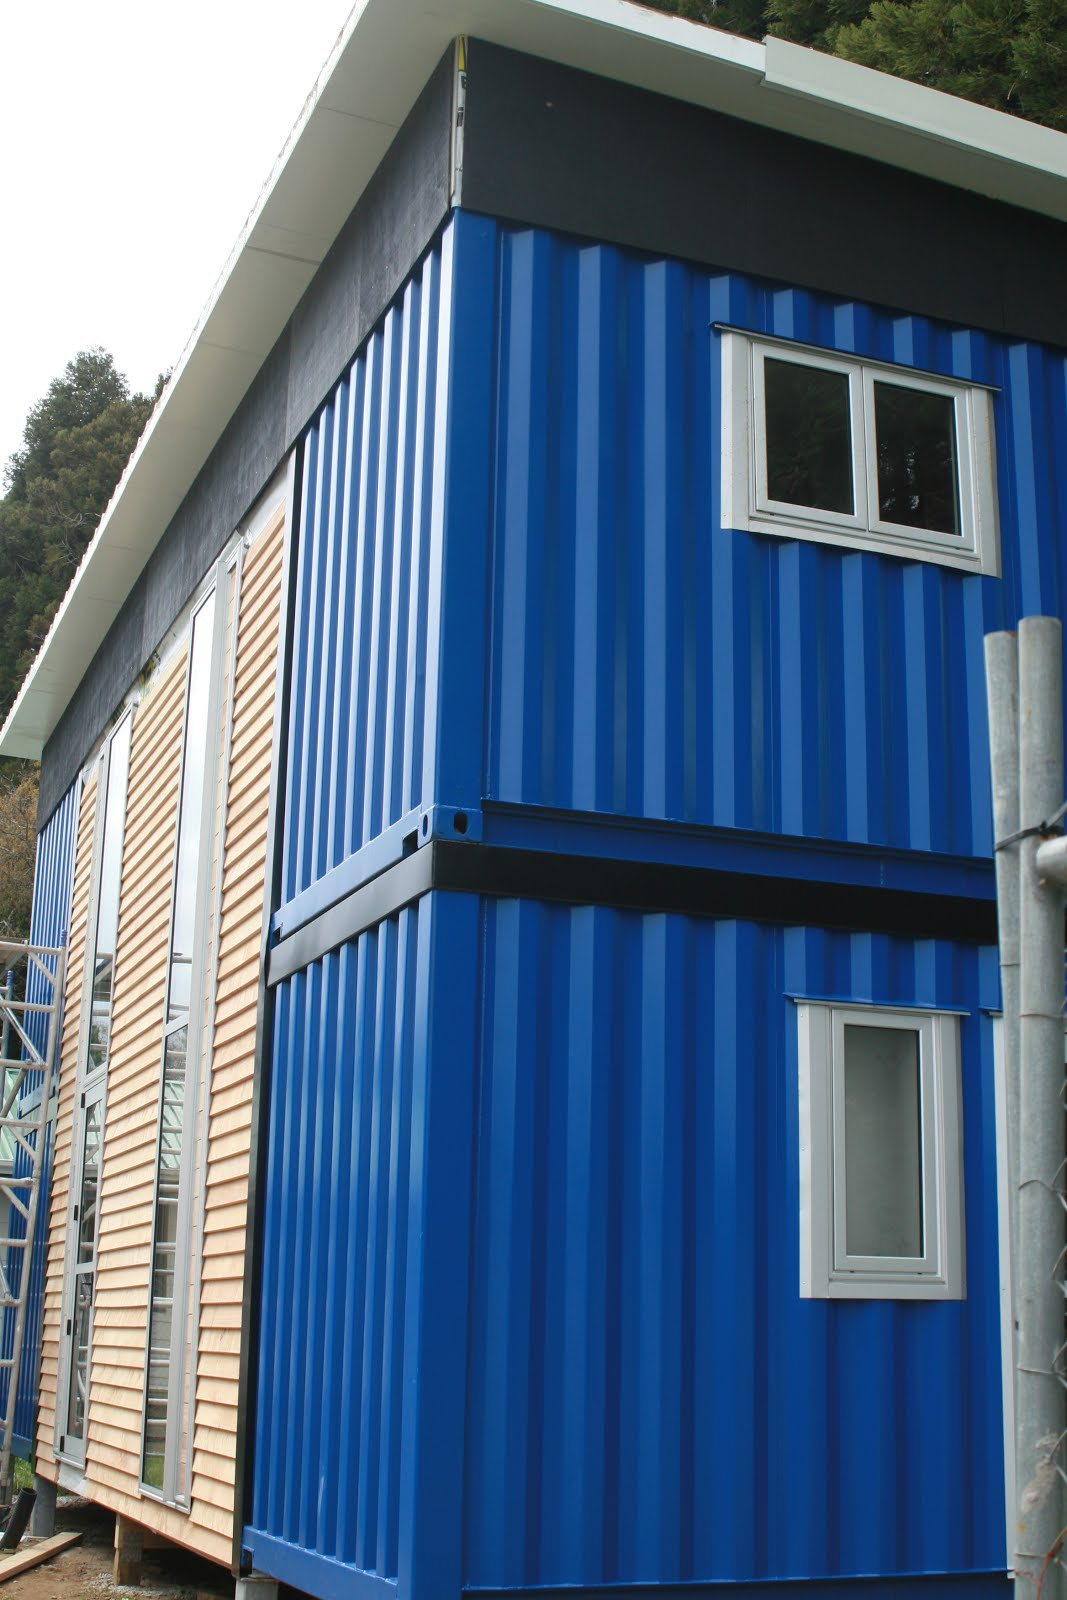 Imaginit Design Windows And Cladding For The Shipping